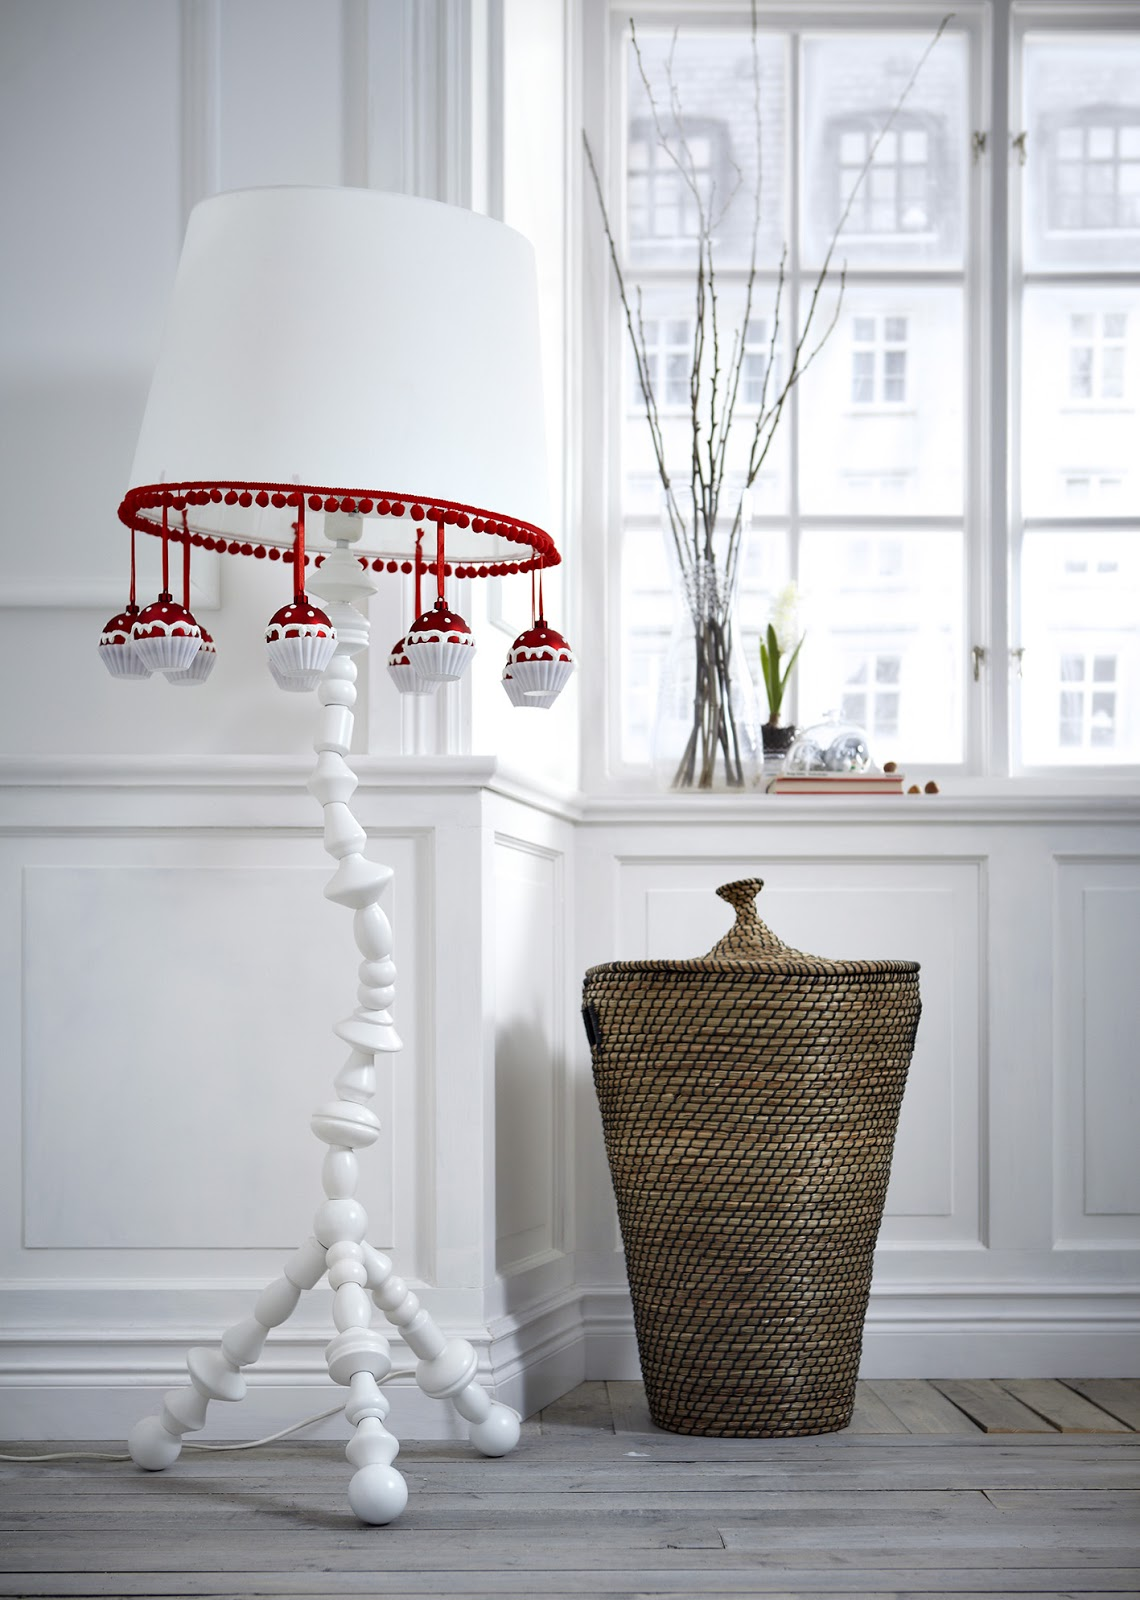 IKEA: christmas is coming our way! - Your Lifestyle Guide